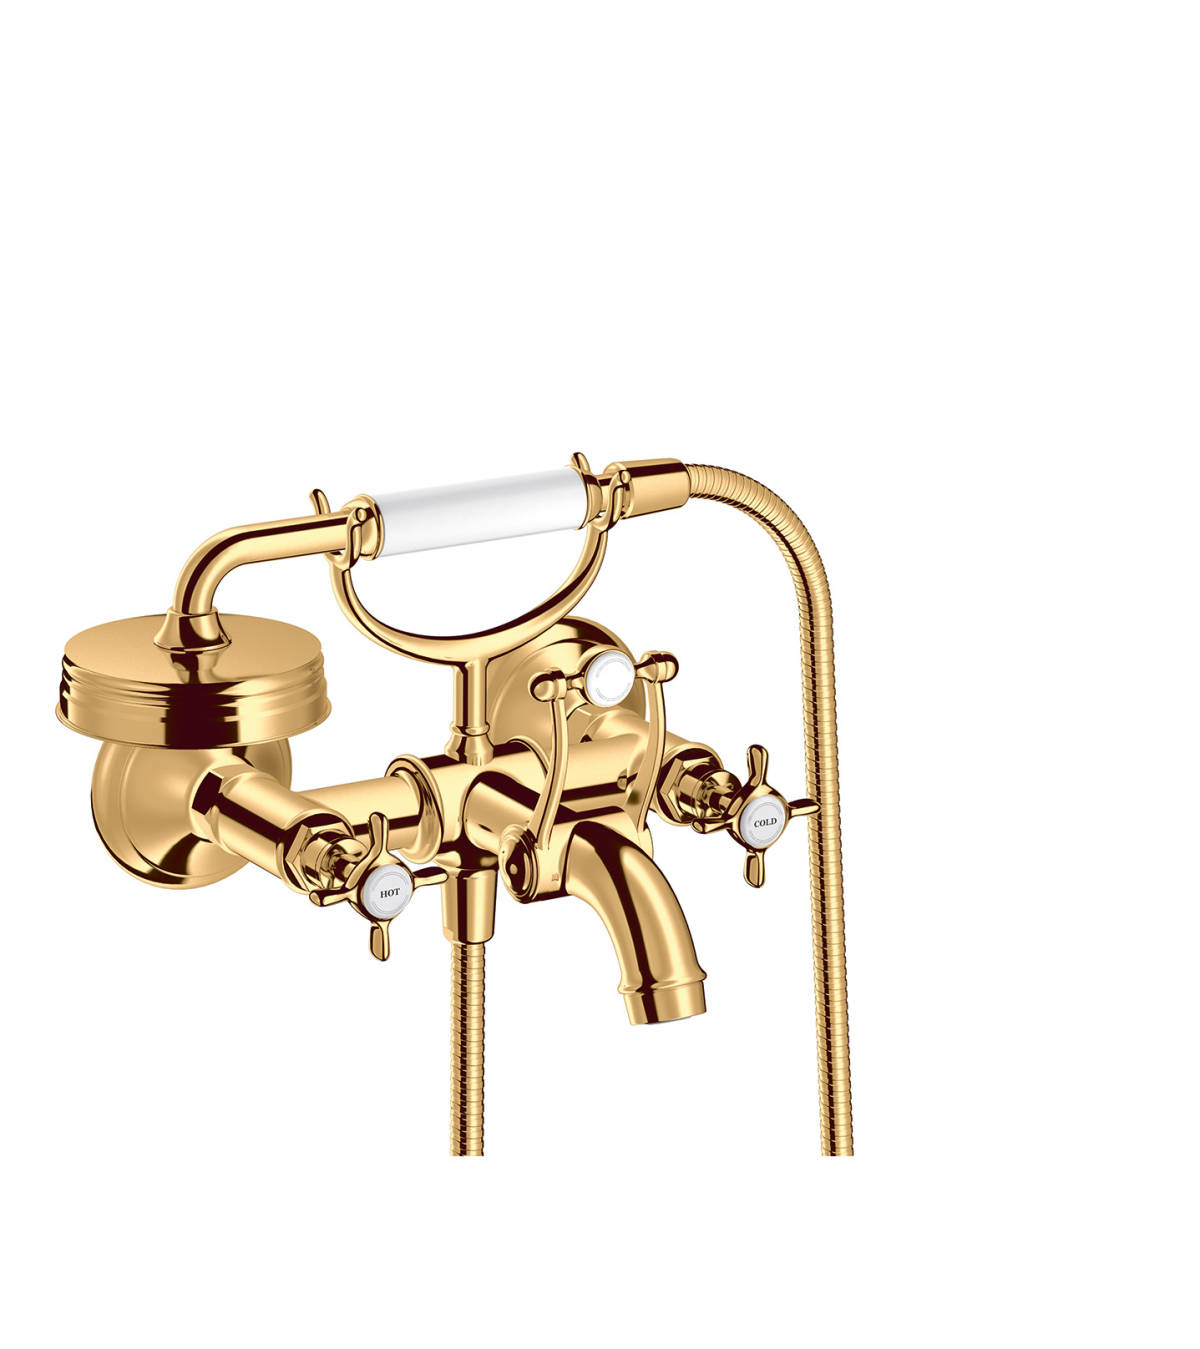 2-handle bath mixer for exposed installation with cross handles, Polished Brass, 16540930